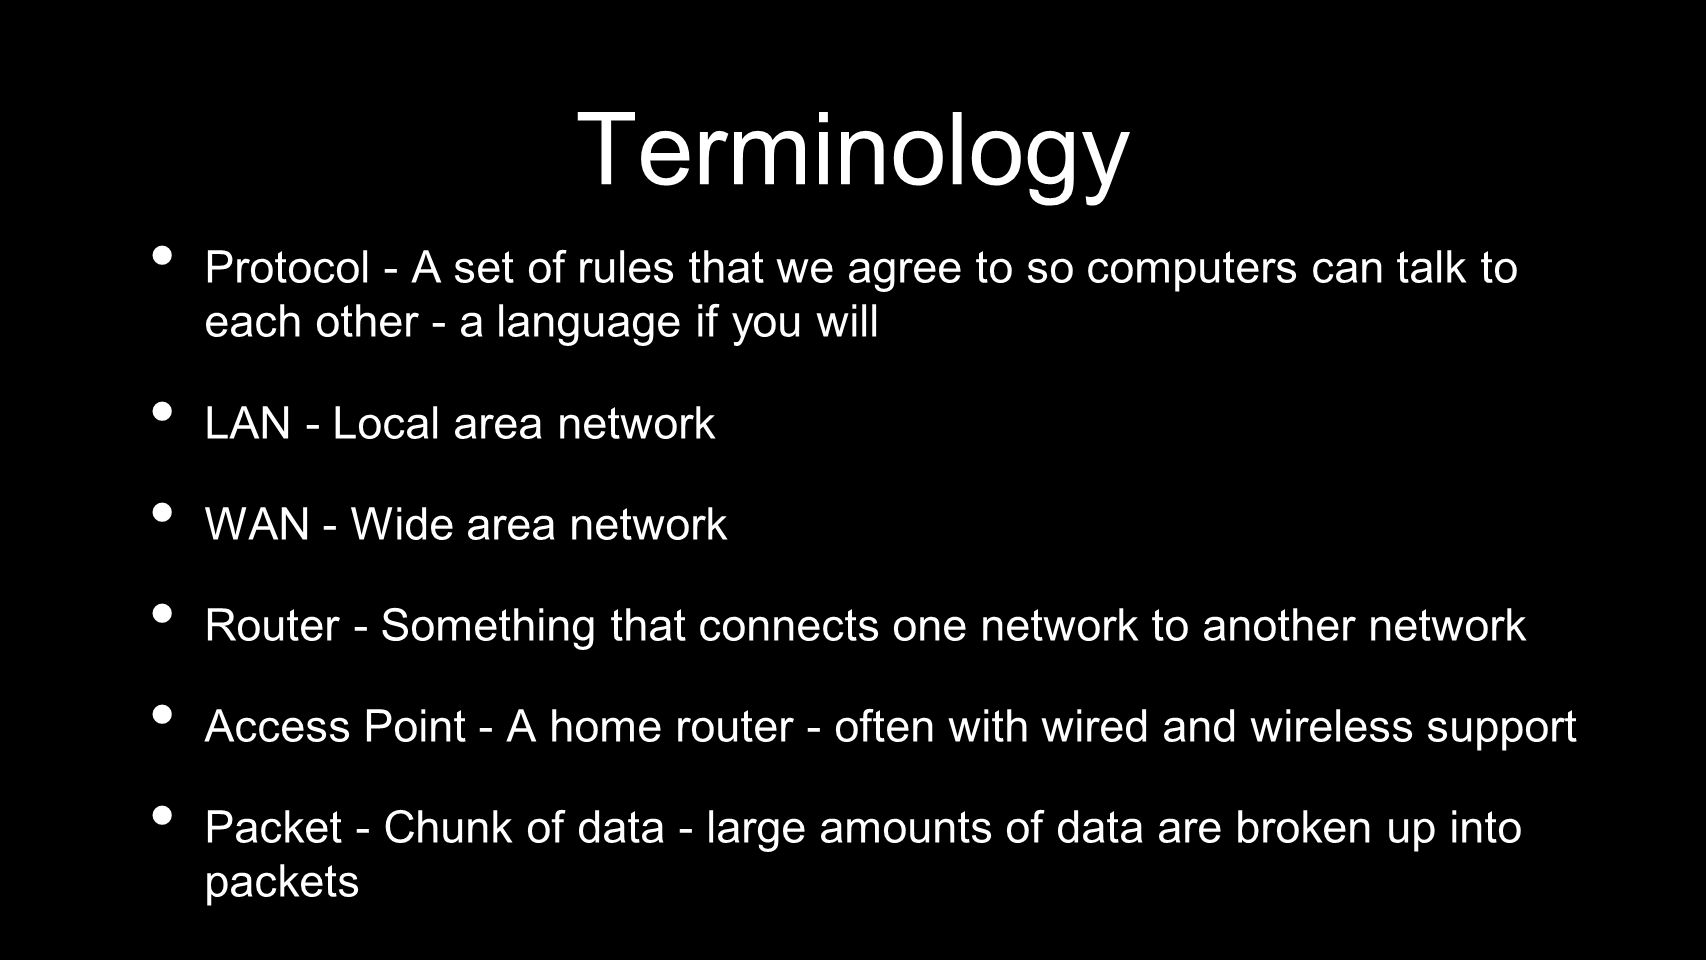 Terminology Protocol - A set of rules that we agree to so computers can talk to each other - a language if you will.